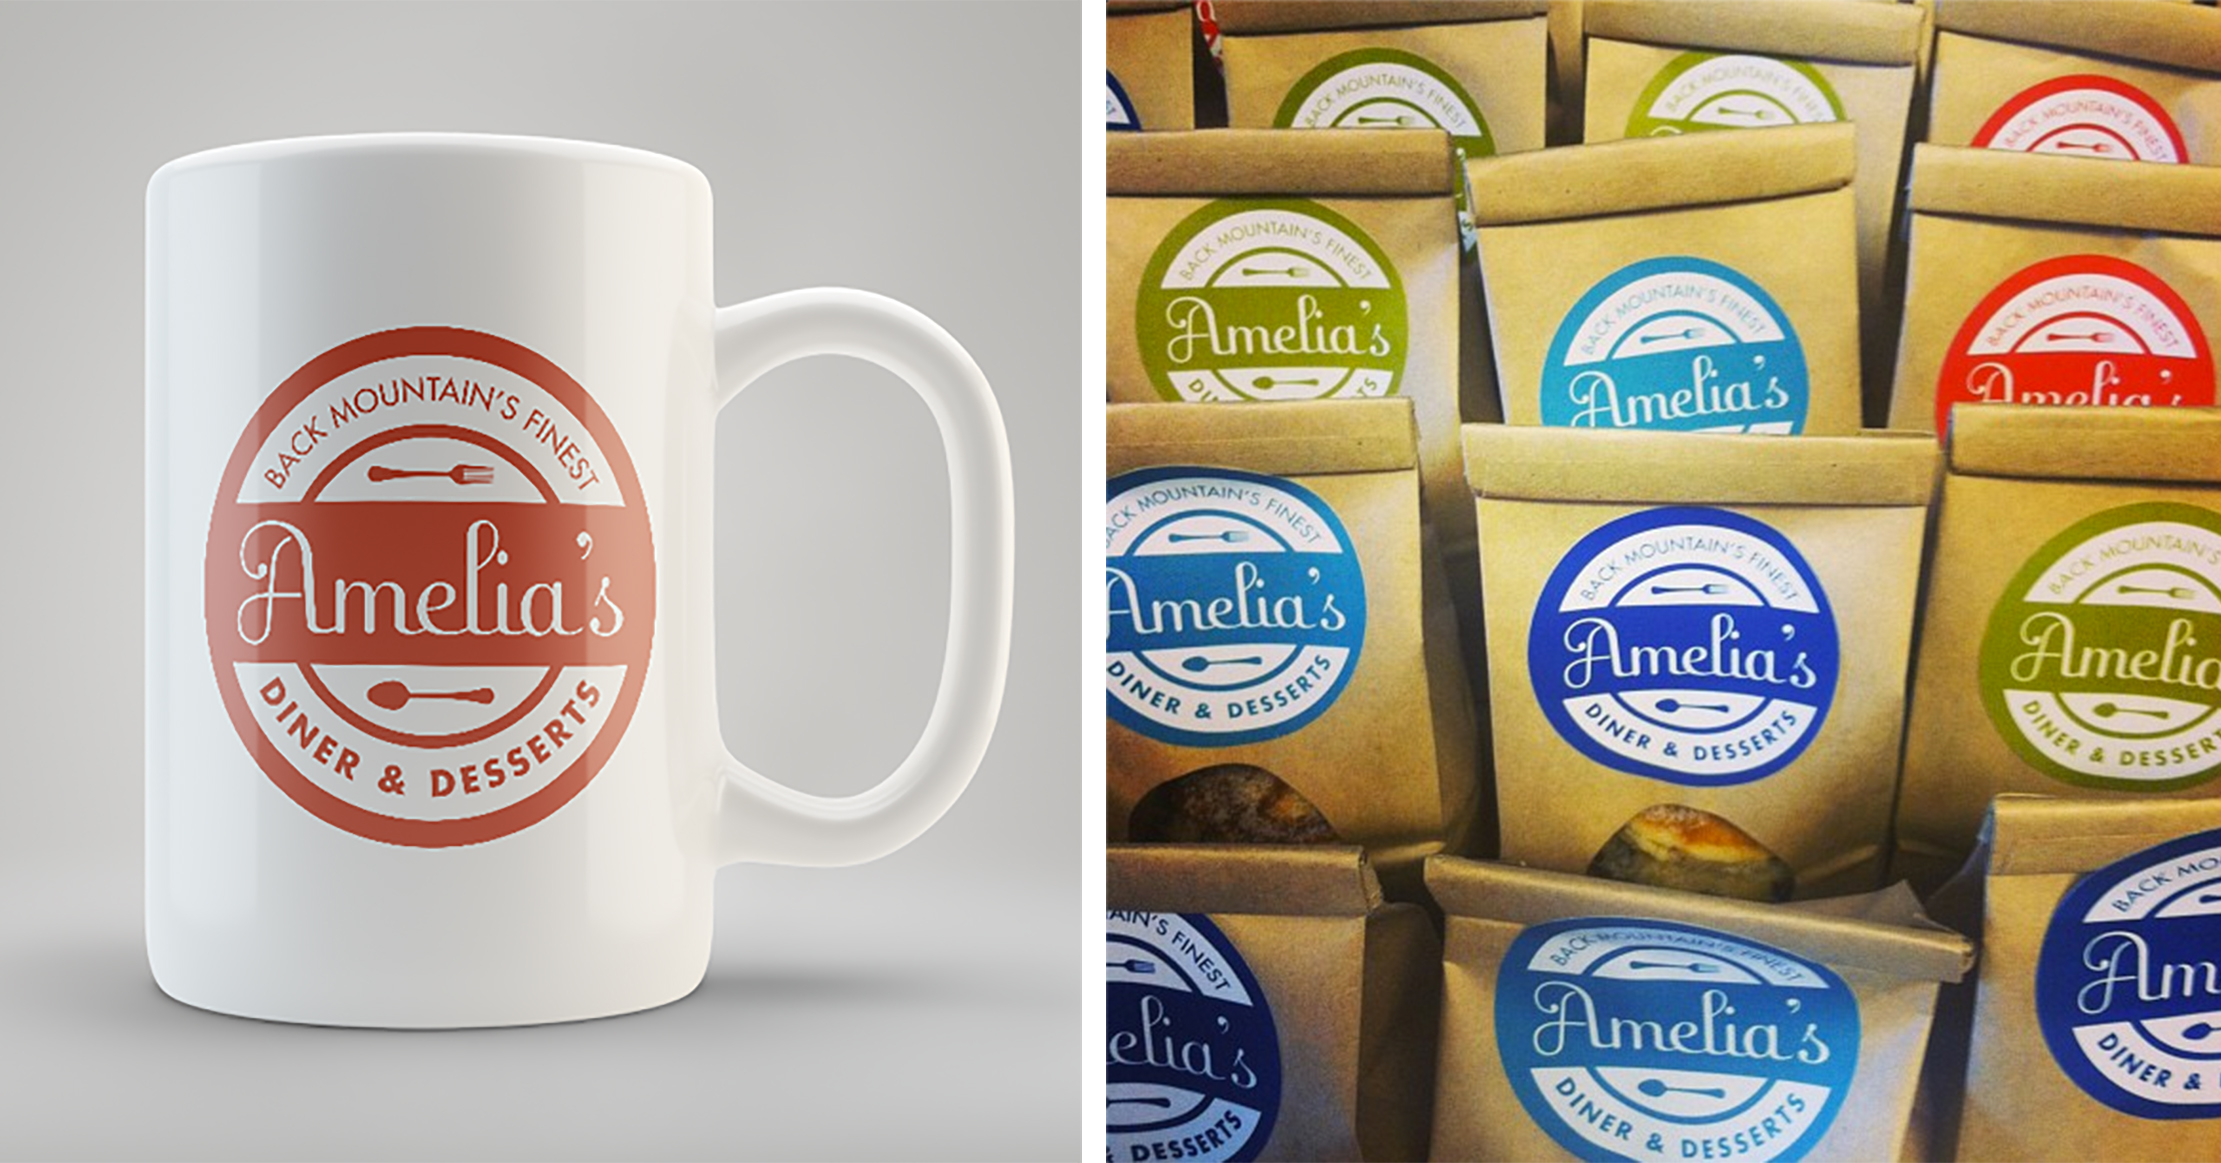 Brand Identity by Just Make Things – Amelia's Diner Mug and Bags